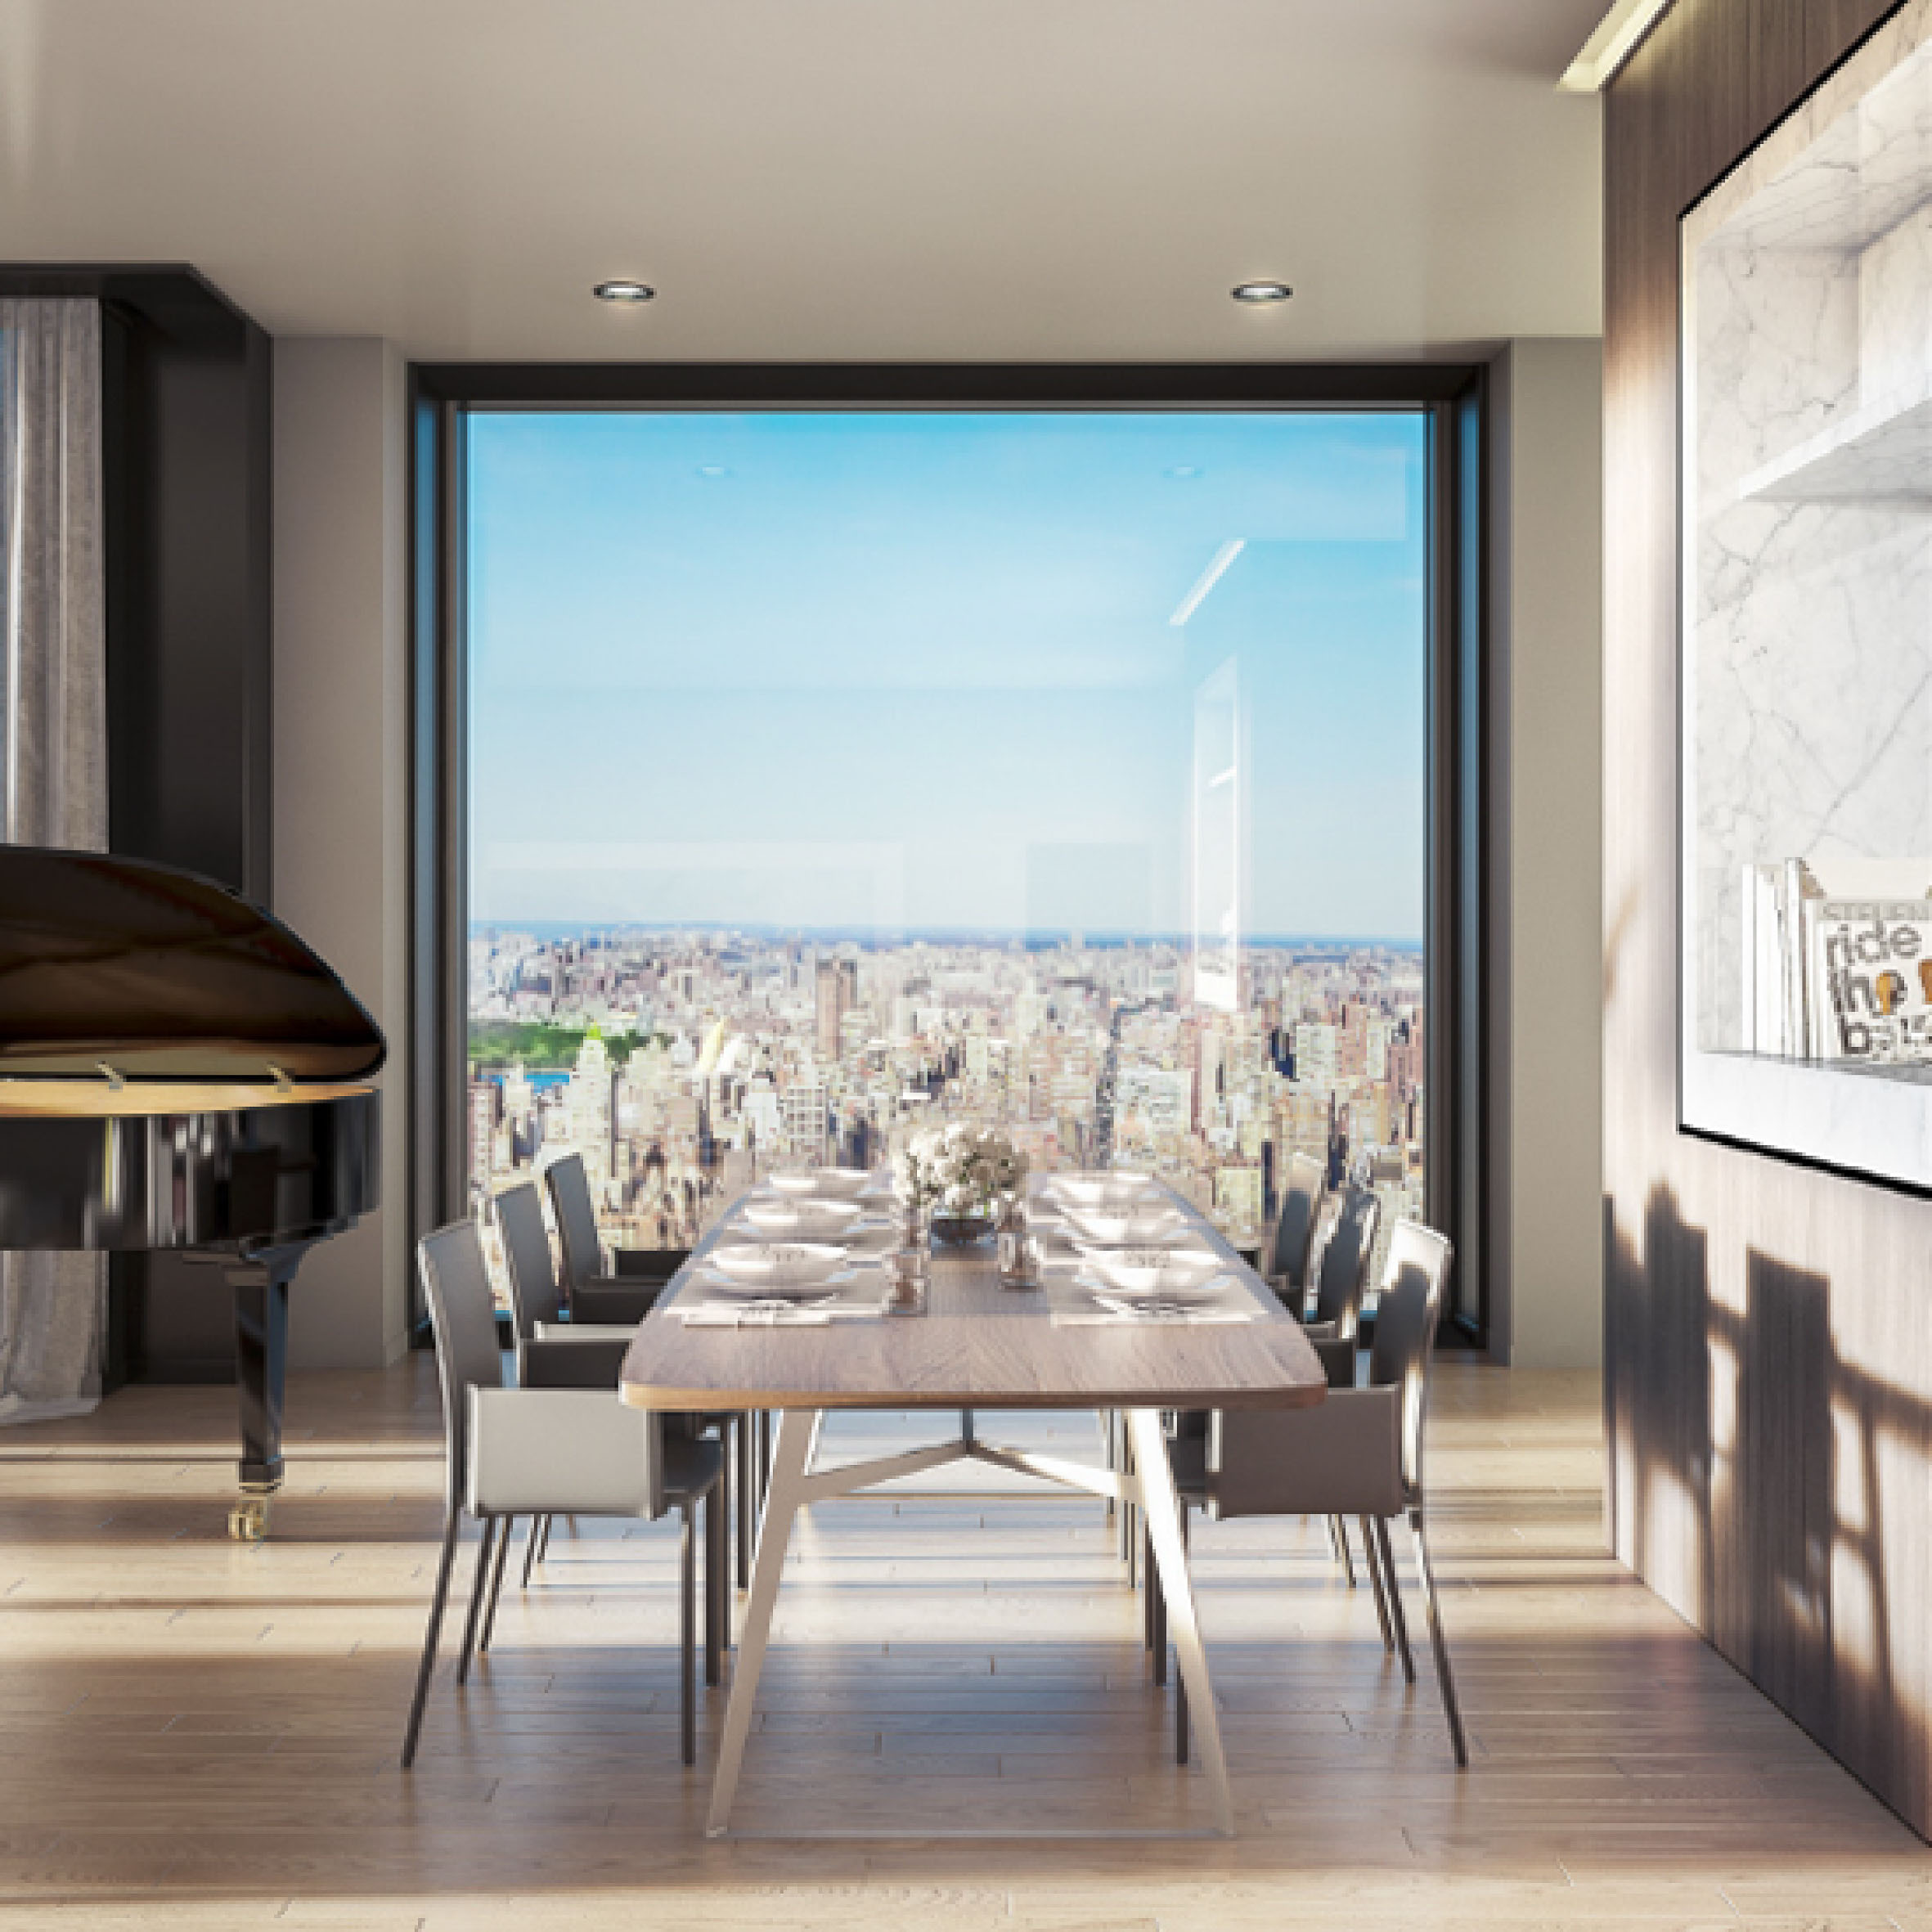 Luxurious dinning room. New York Skyline view. 158 East 61st Street